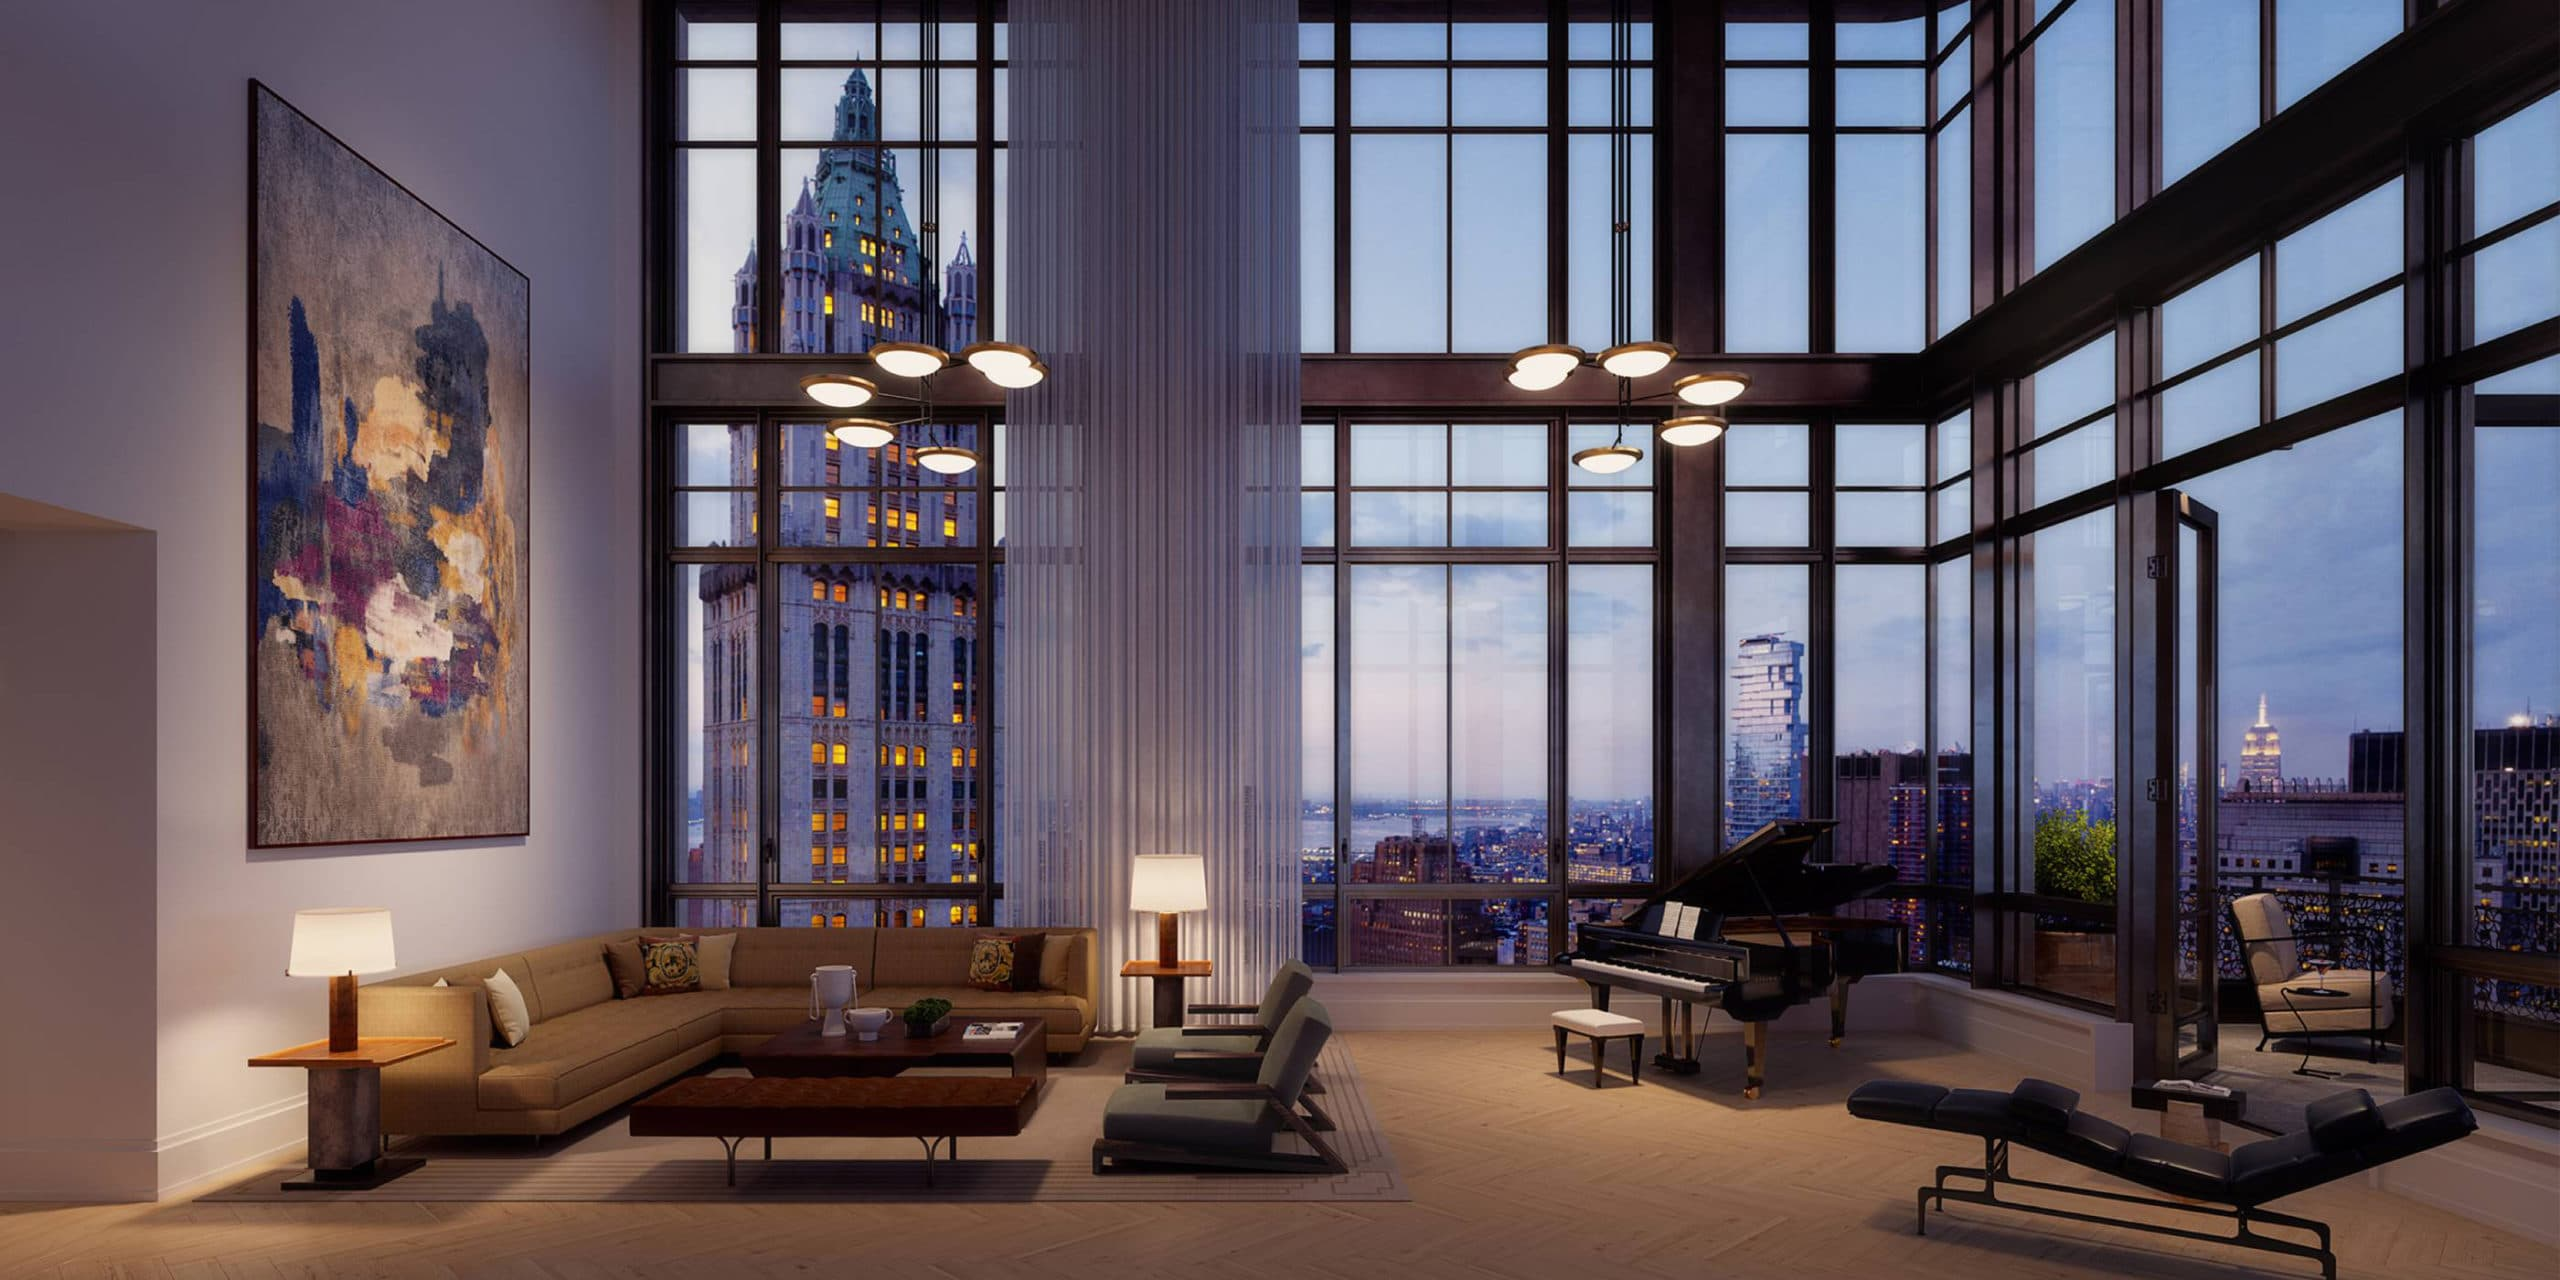 Penthouse at 25 Park Row luxury condos in NYC. High ceilings, floor-to-ceiling windows and living room with terrace access.